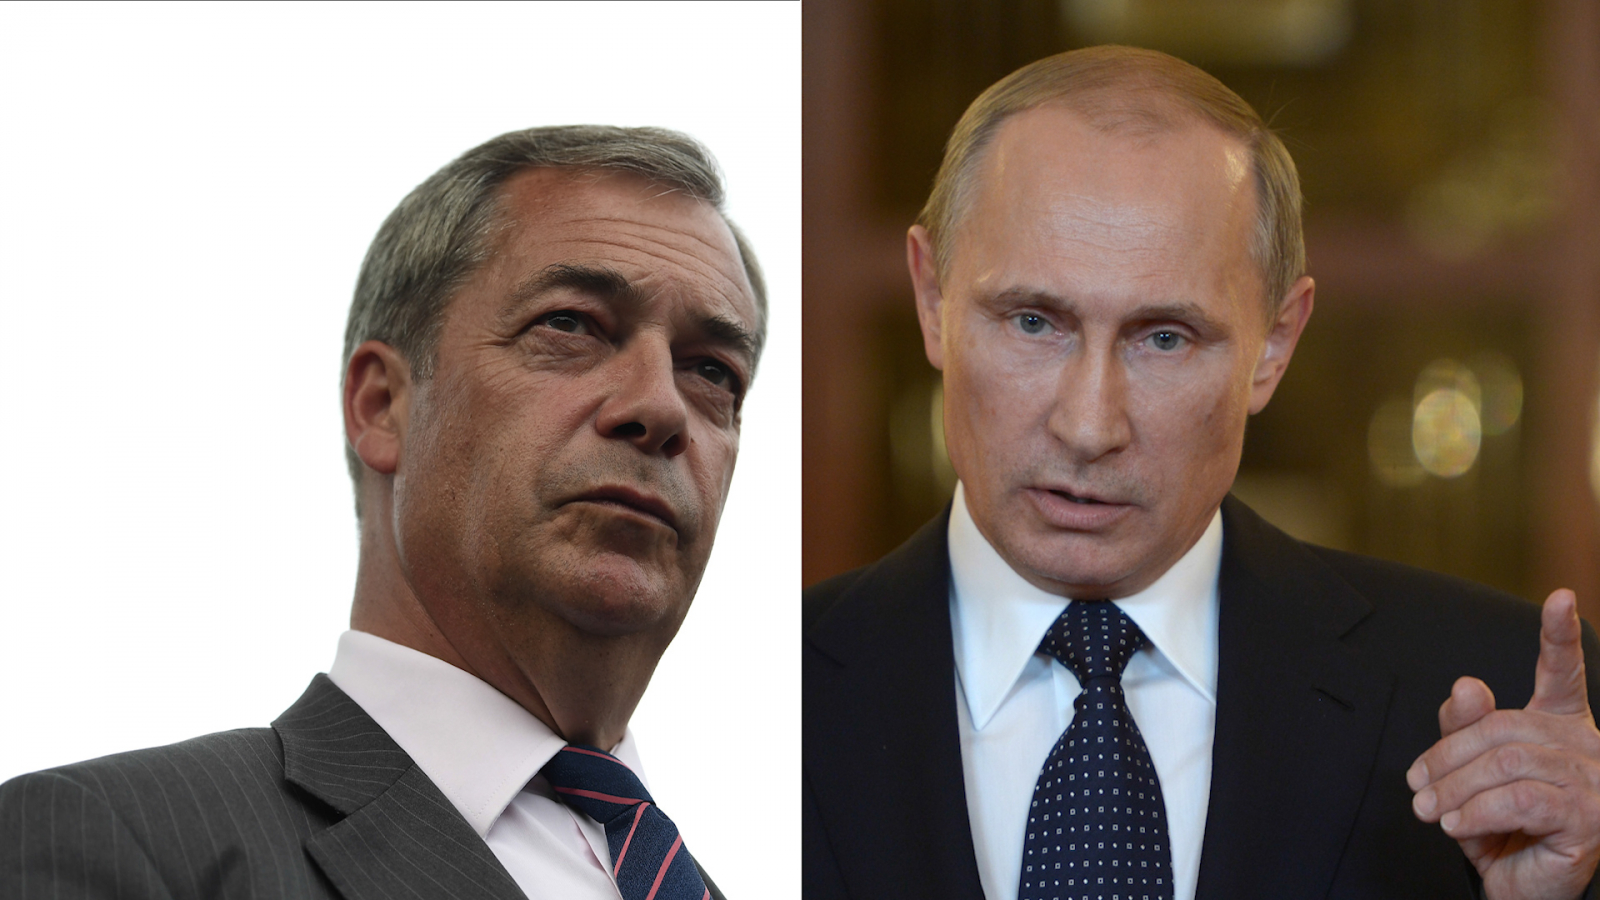 nigel-farage-on-putin-hes-a-very-questionable-human-being